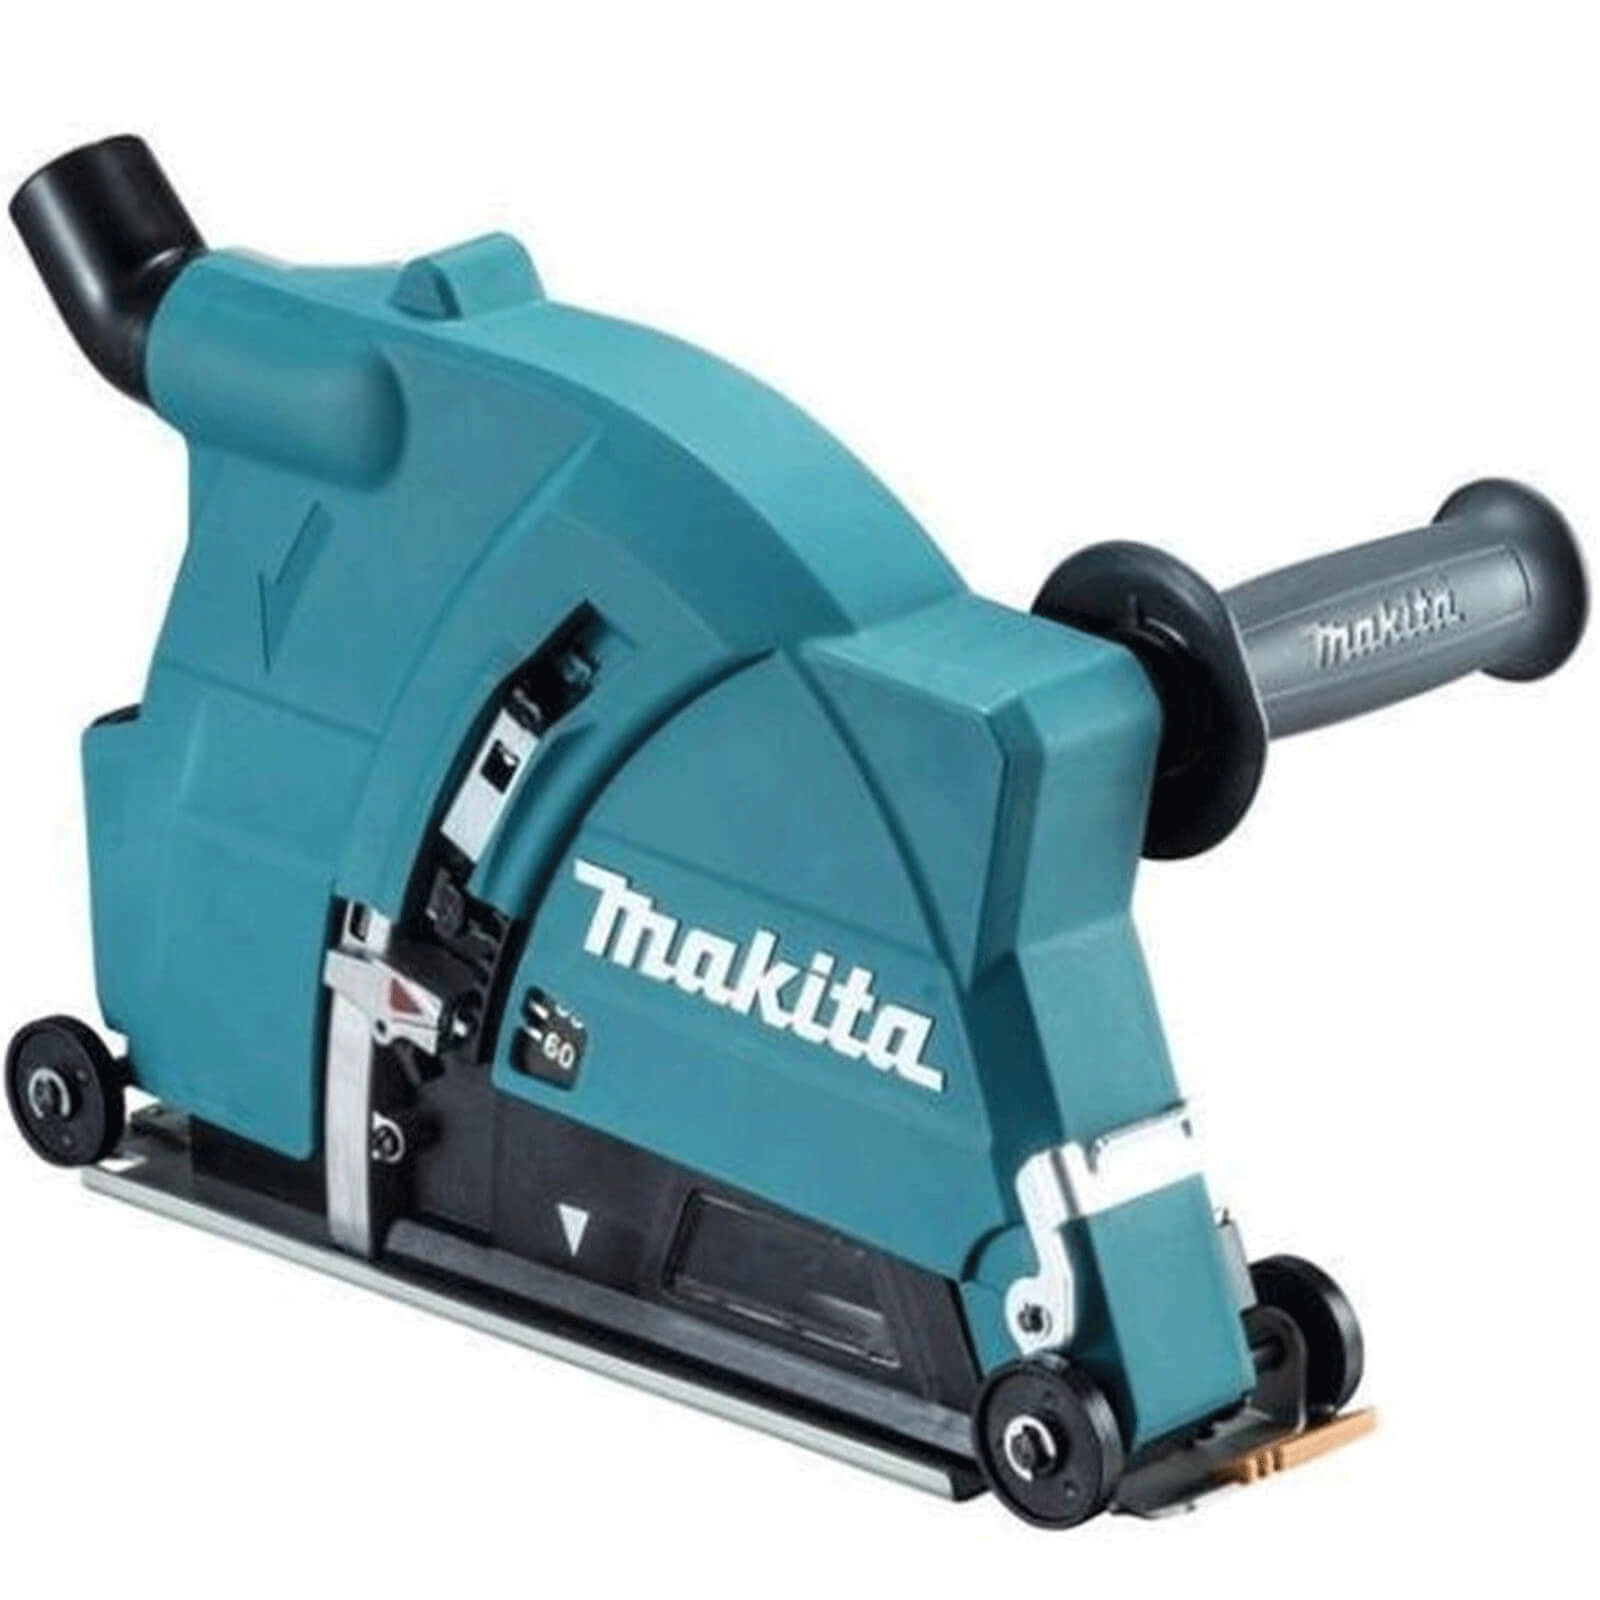 Image of Makita 198440-5 Angle Grinder Dust Collecting Wheel Guard Attachment